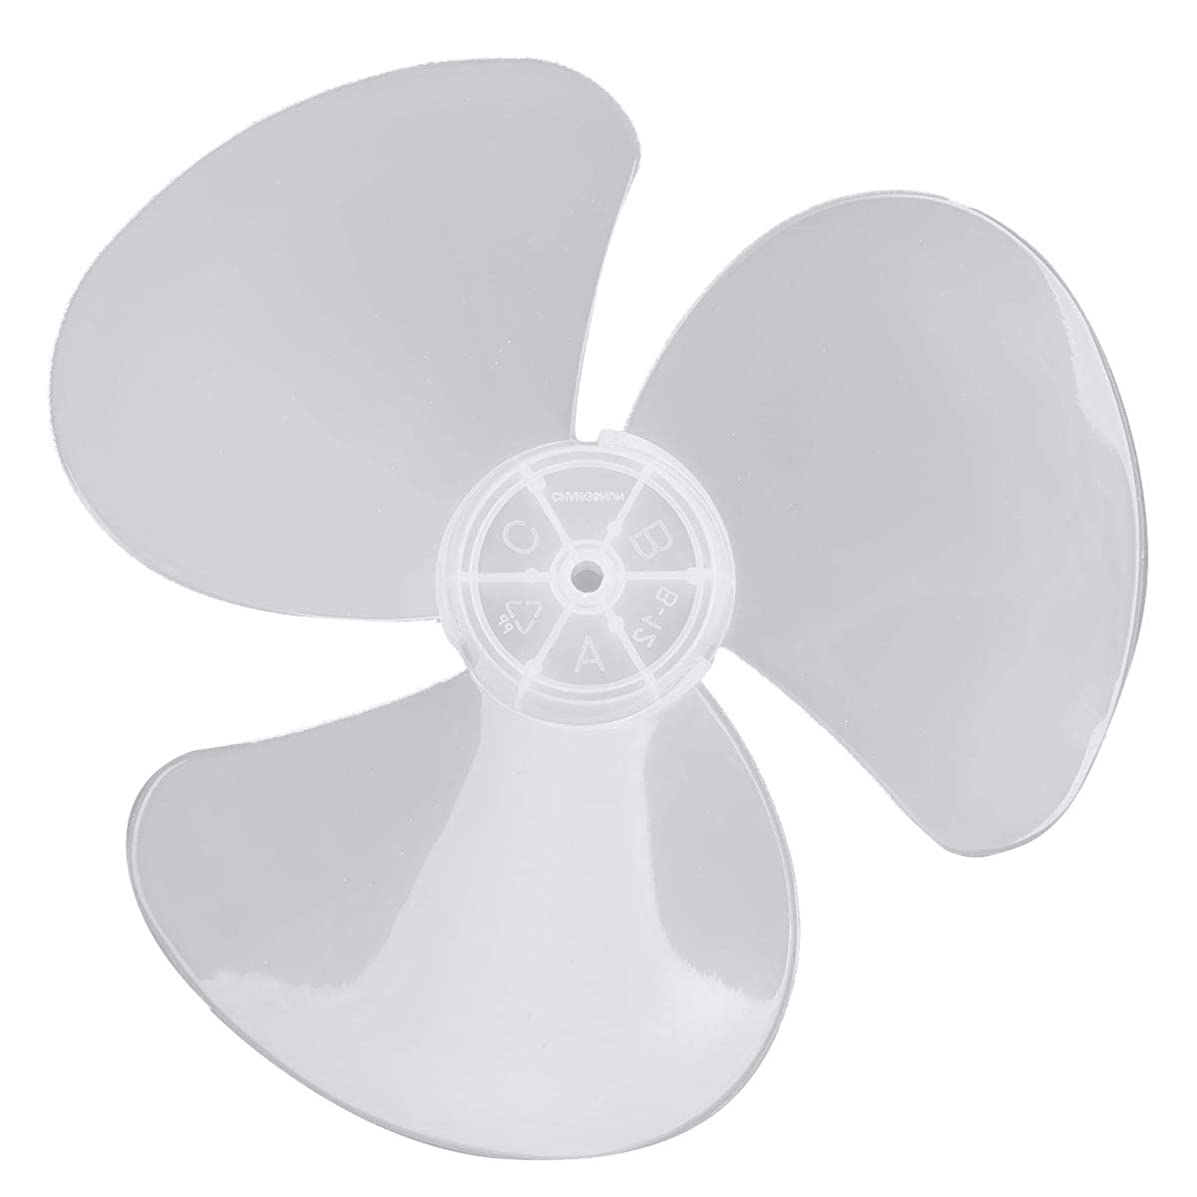 CHICTRY 12 Inch Fan Blade 3 Leaves Plastic Fan Blade Replacement for Household Standing Pedestal Fan Table Fanner General Accessories White One Size